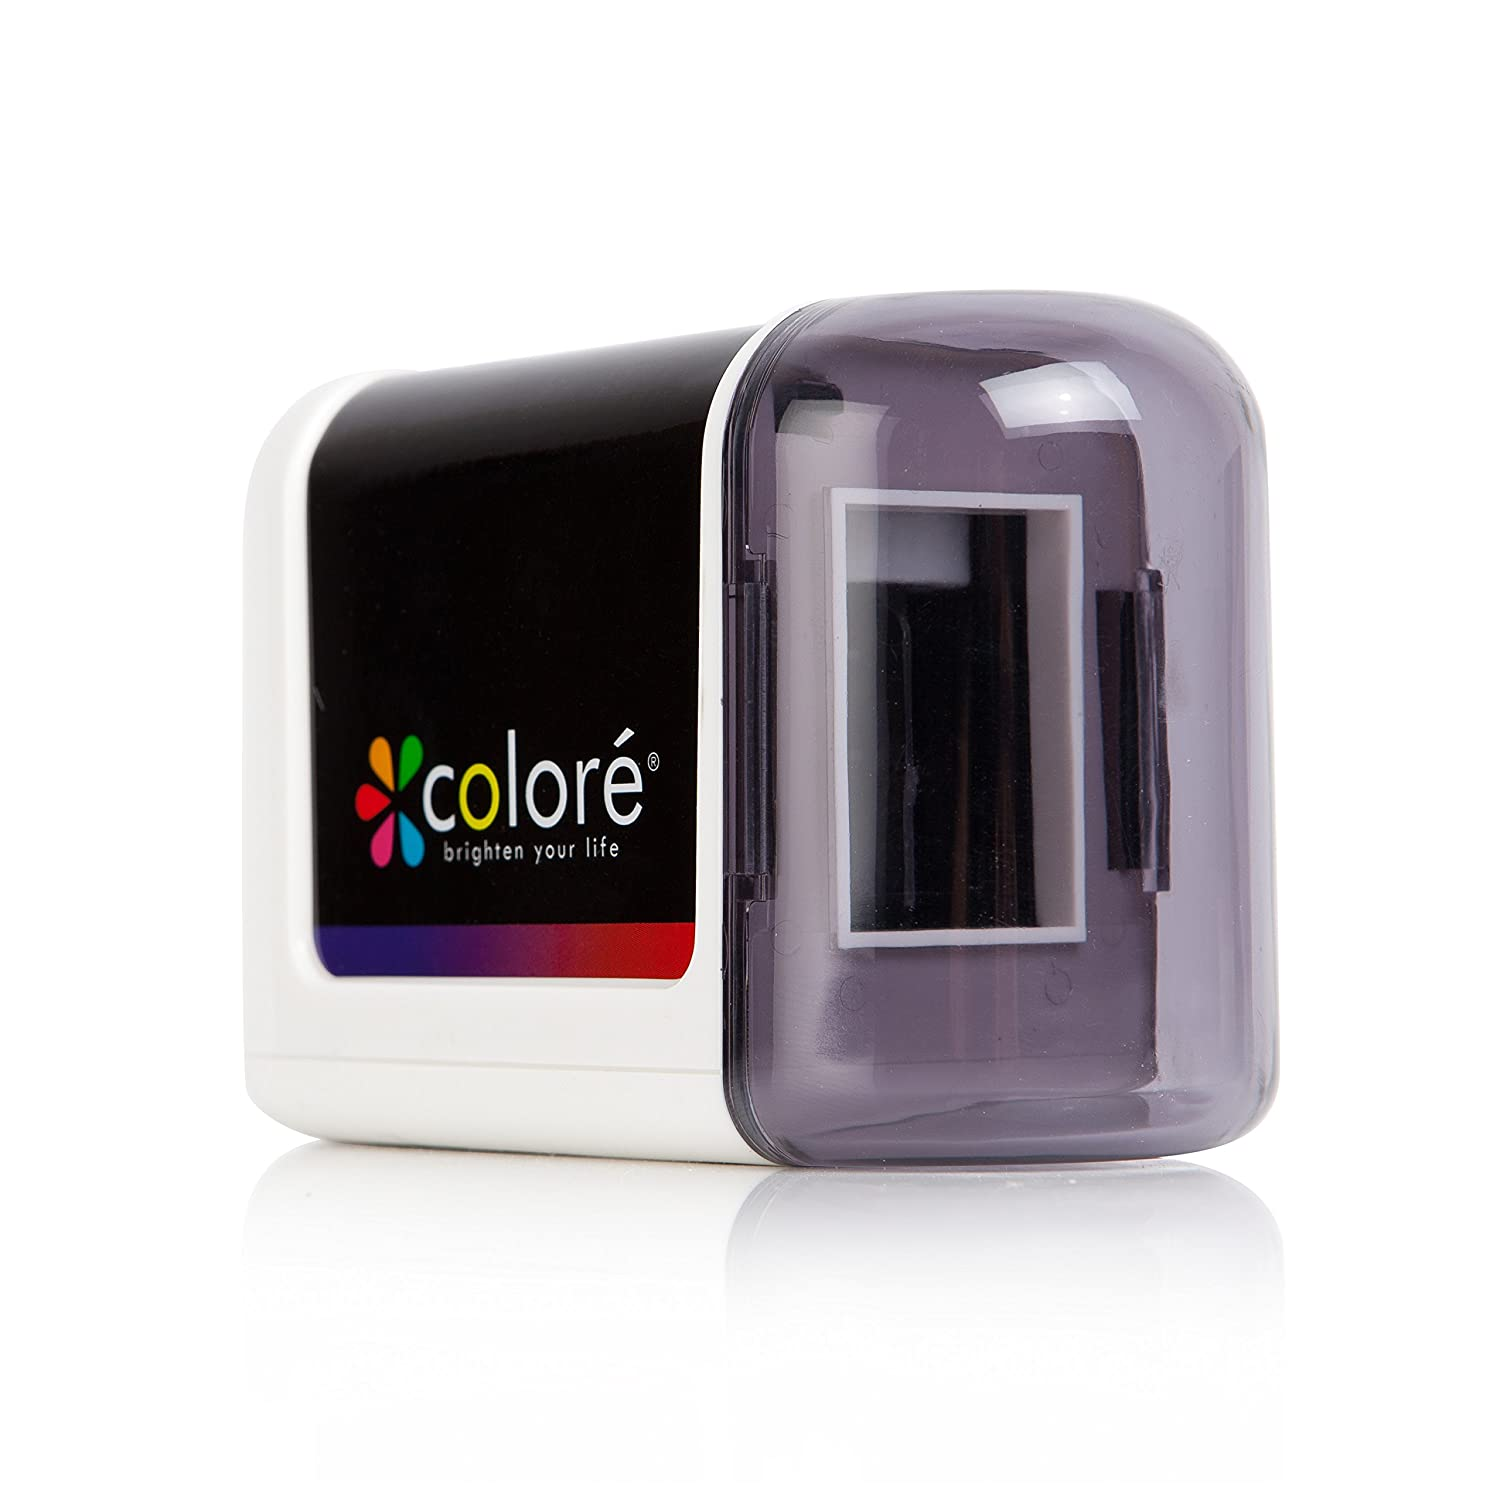 Colore Electric Pencil Sharpener - Powerful, Small, Battery Operated Heavy Duty, Safe Sharpeners for Kids, School, Office Colore Art